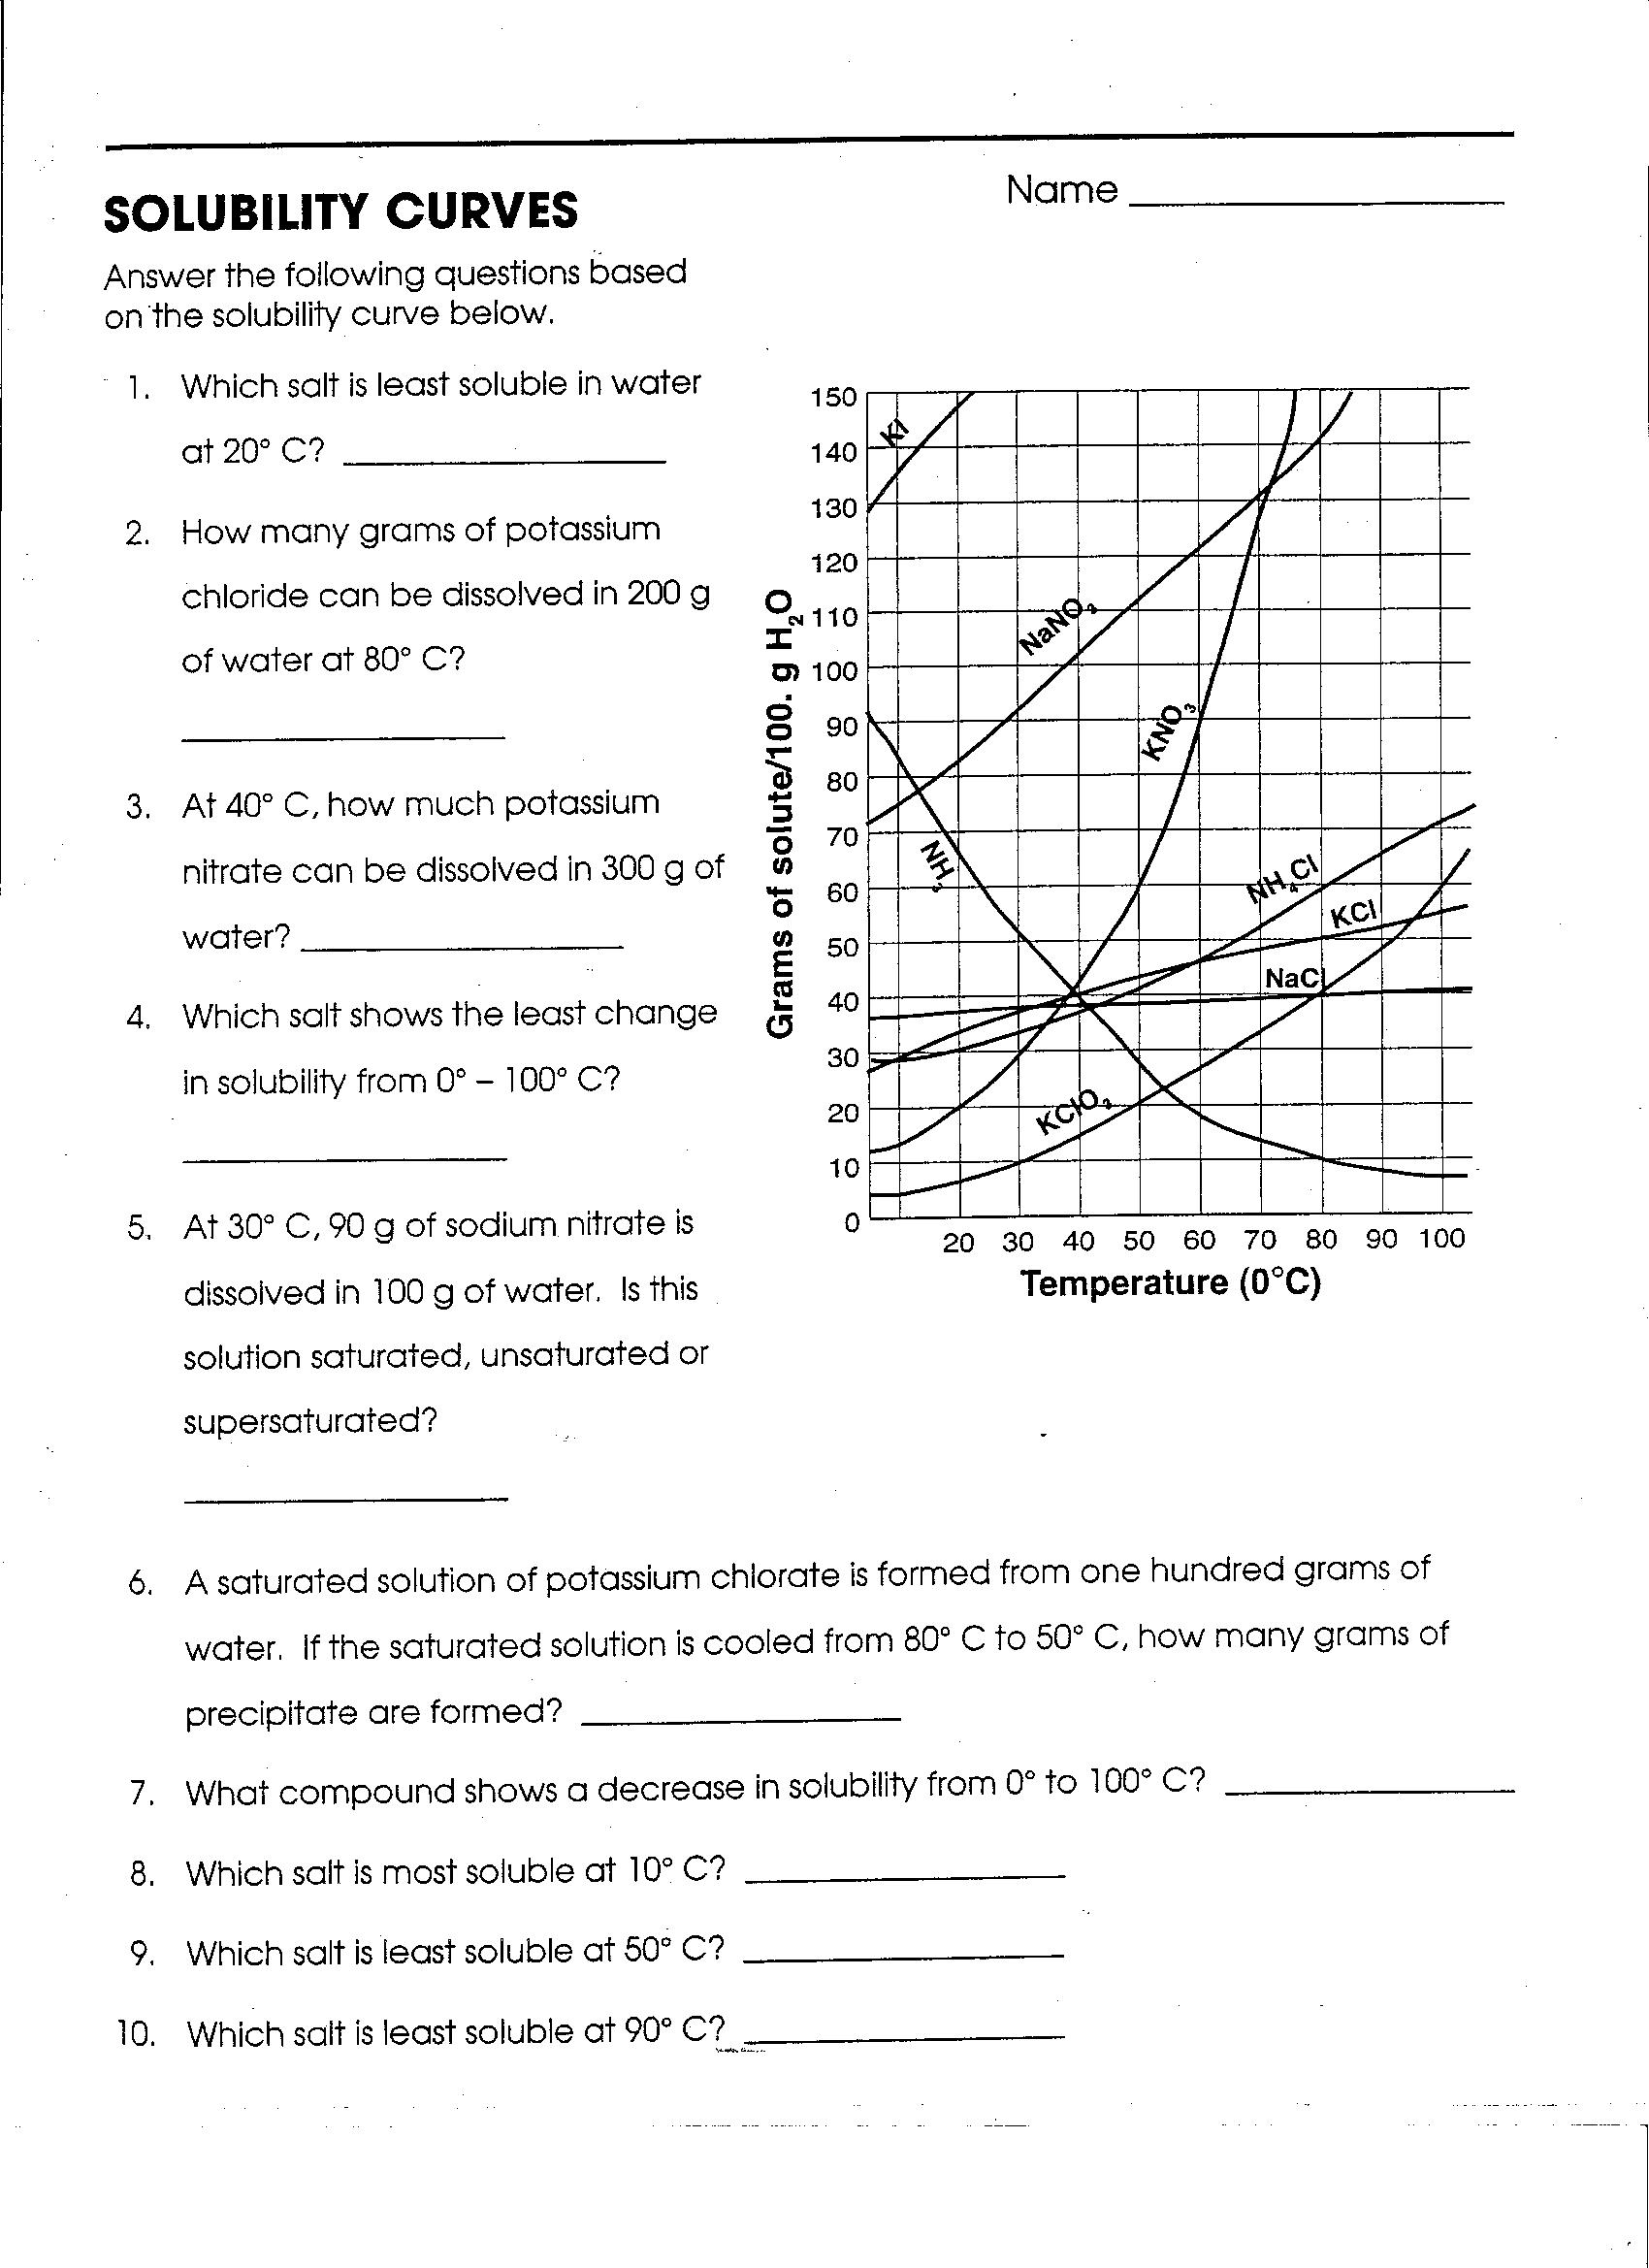 worksheet introduction to chemistry worksheet answers grass fedjp worksheet study site. Black Bedroom Furniture Sets. Home Design Ideas